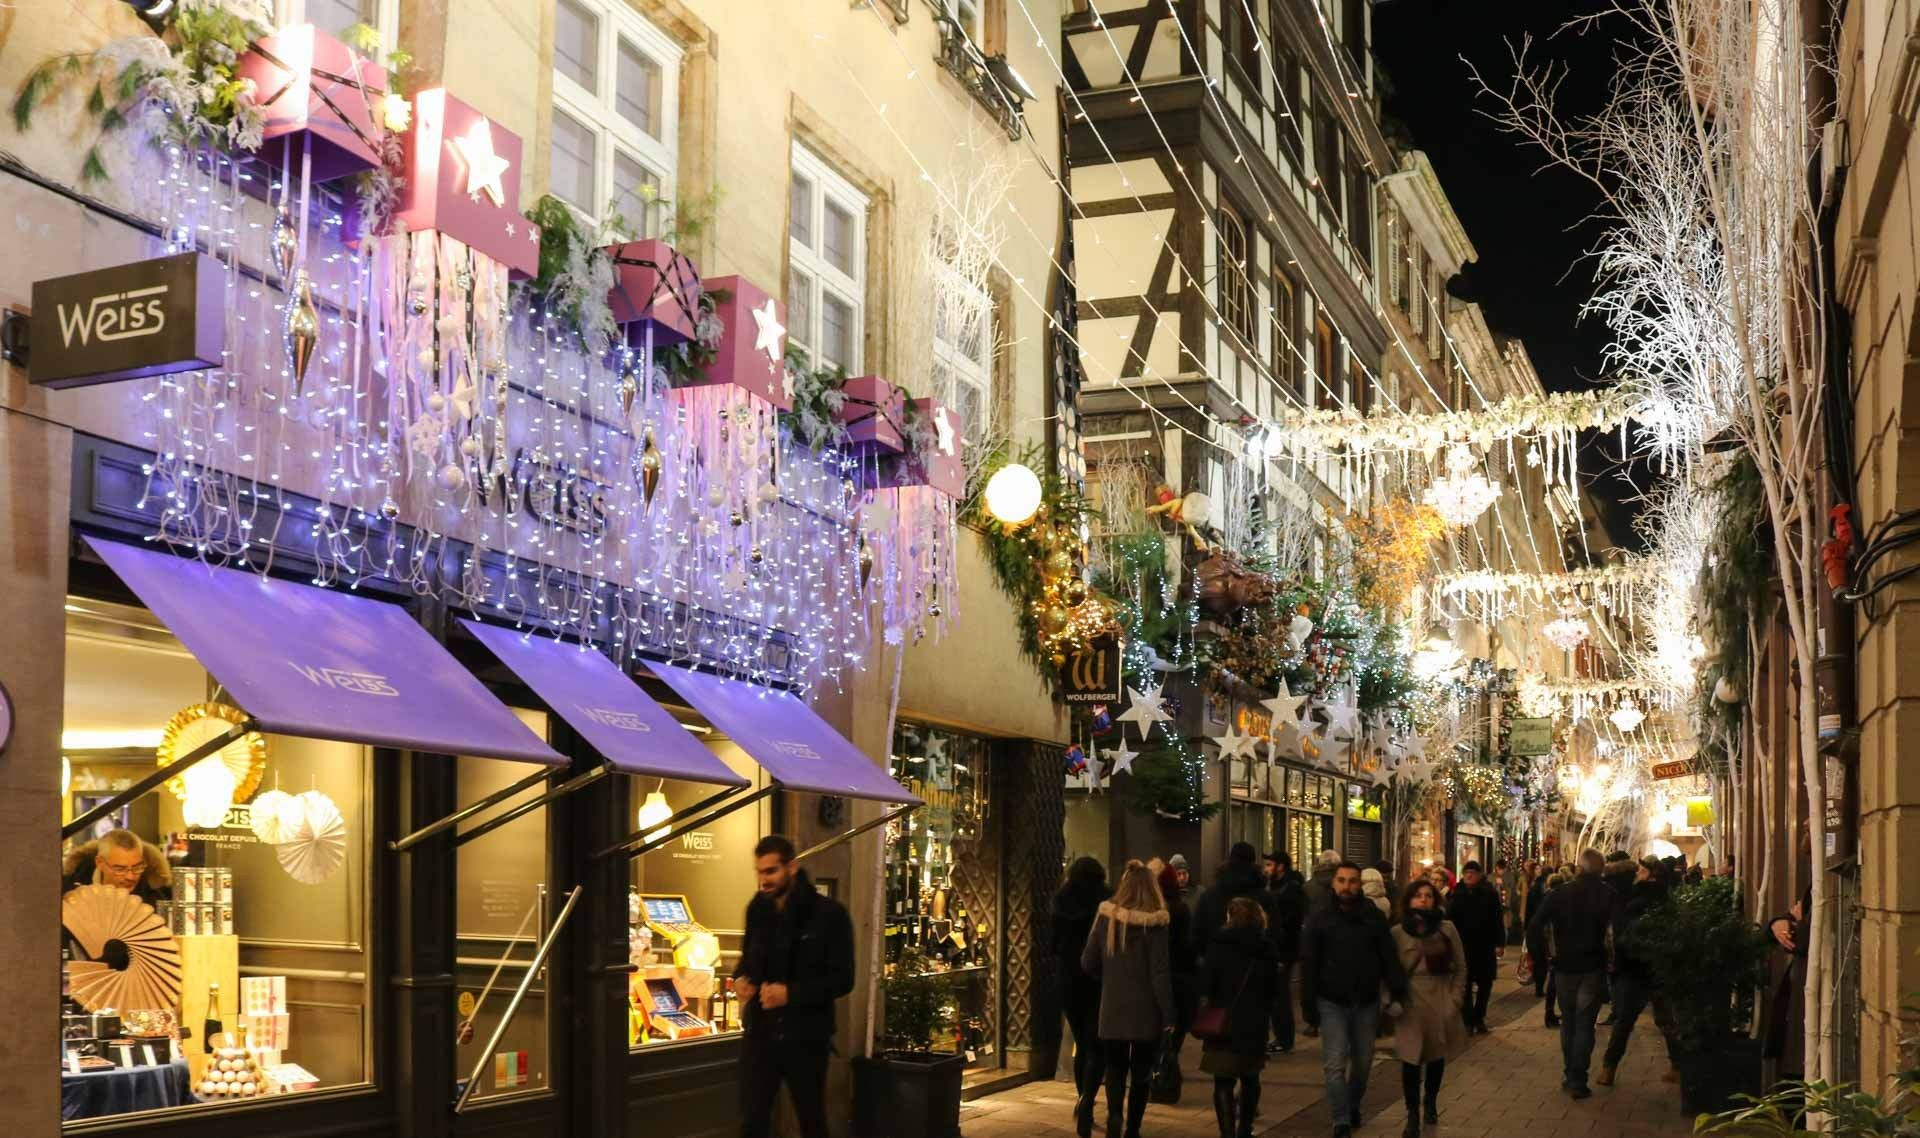 Strasbourg Christmas Markets (2020 Dates and Location)